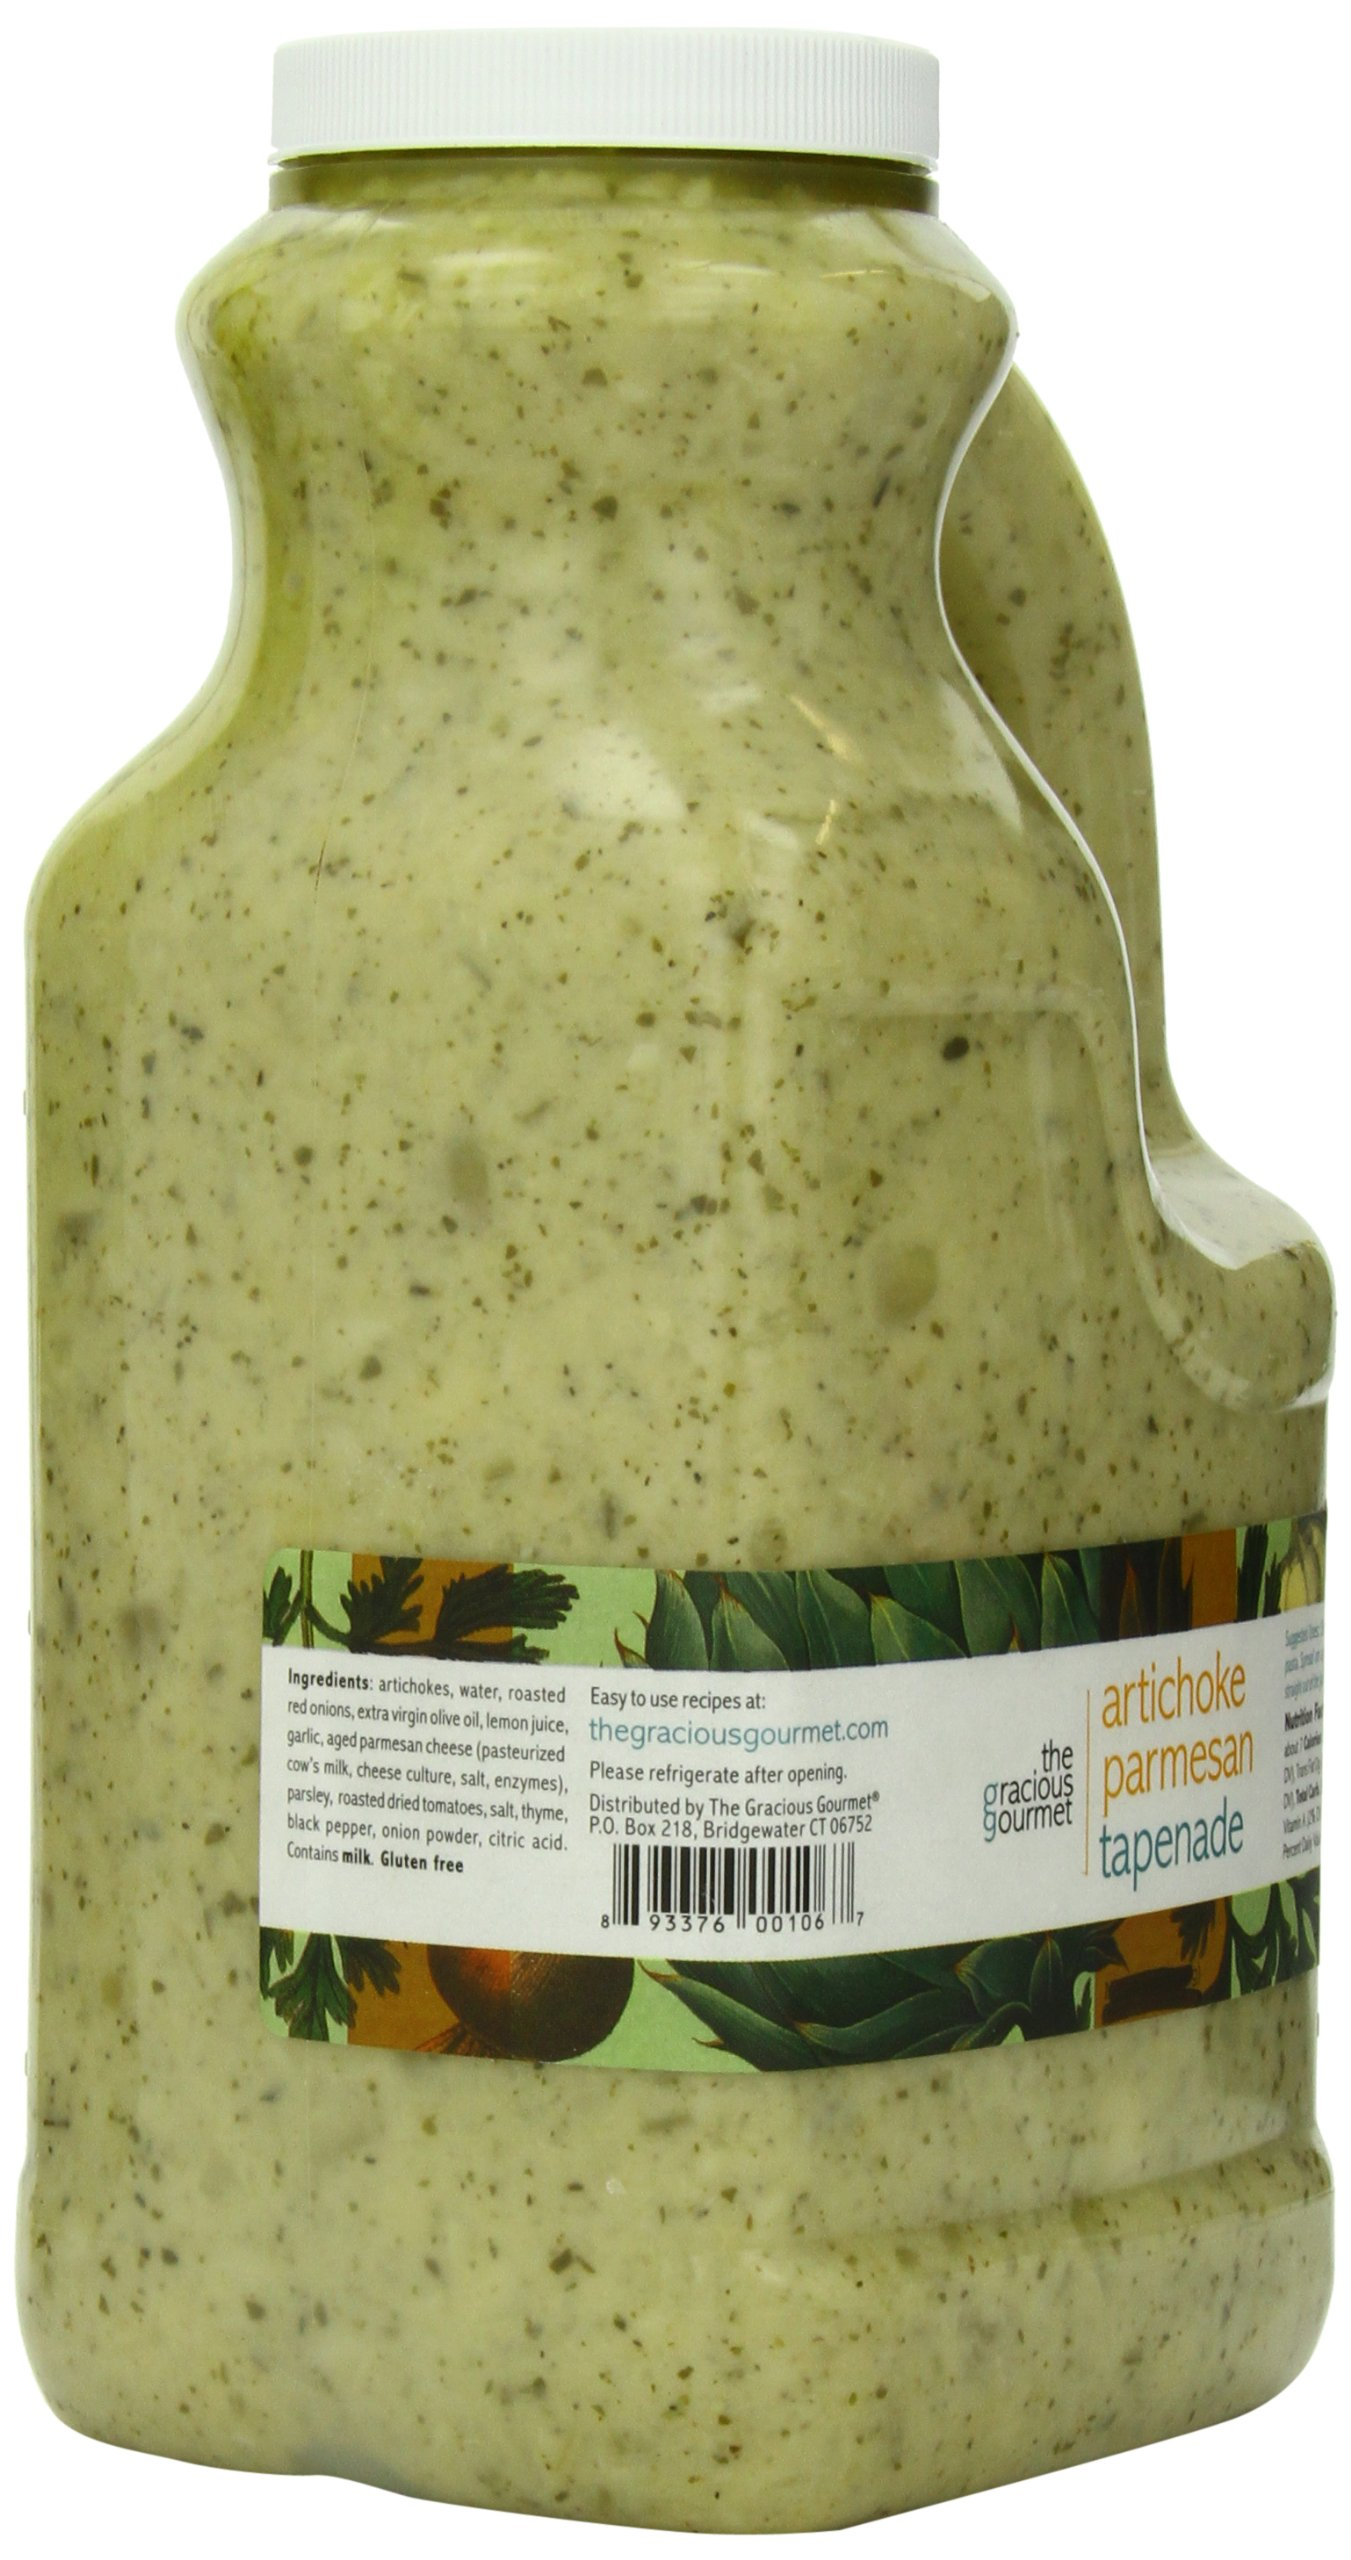 The Gracious Gourmet Artichoke Parmesan Tapenade, 76-Ounce by The Gracious Gourmet (Image #5)